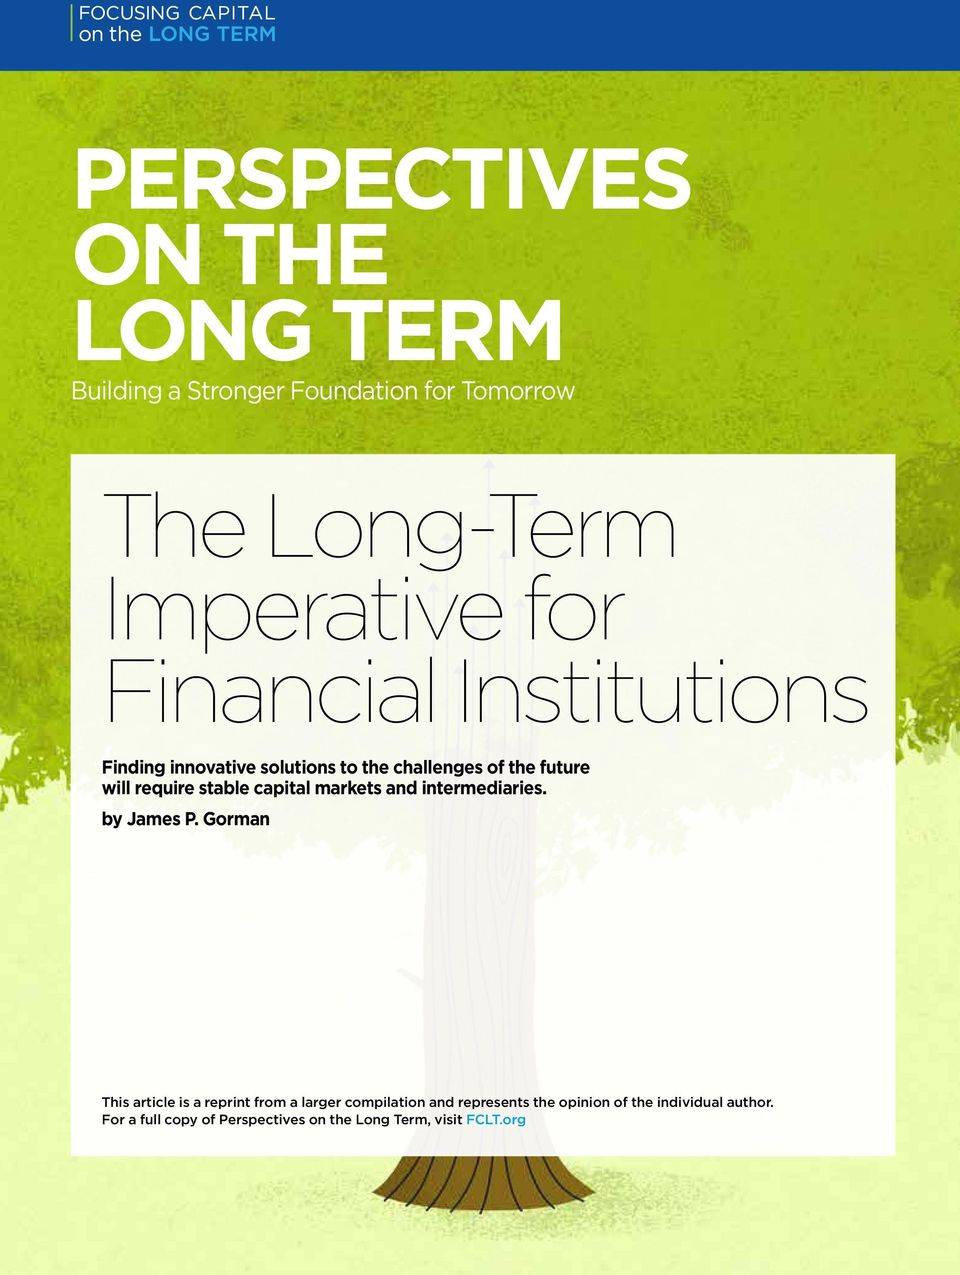 capital markets and intermediaries. by James P.